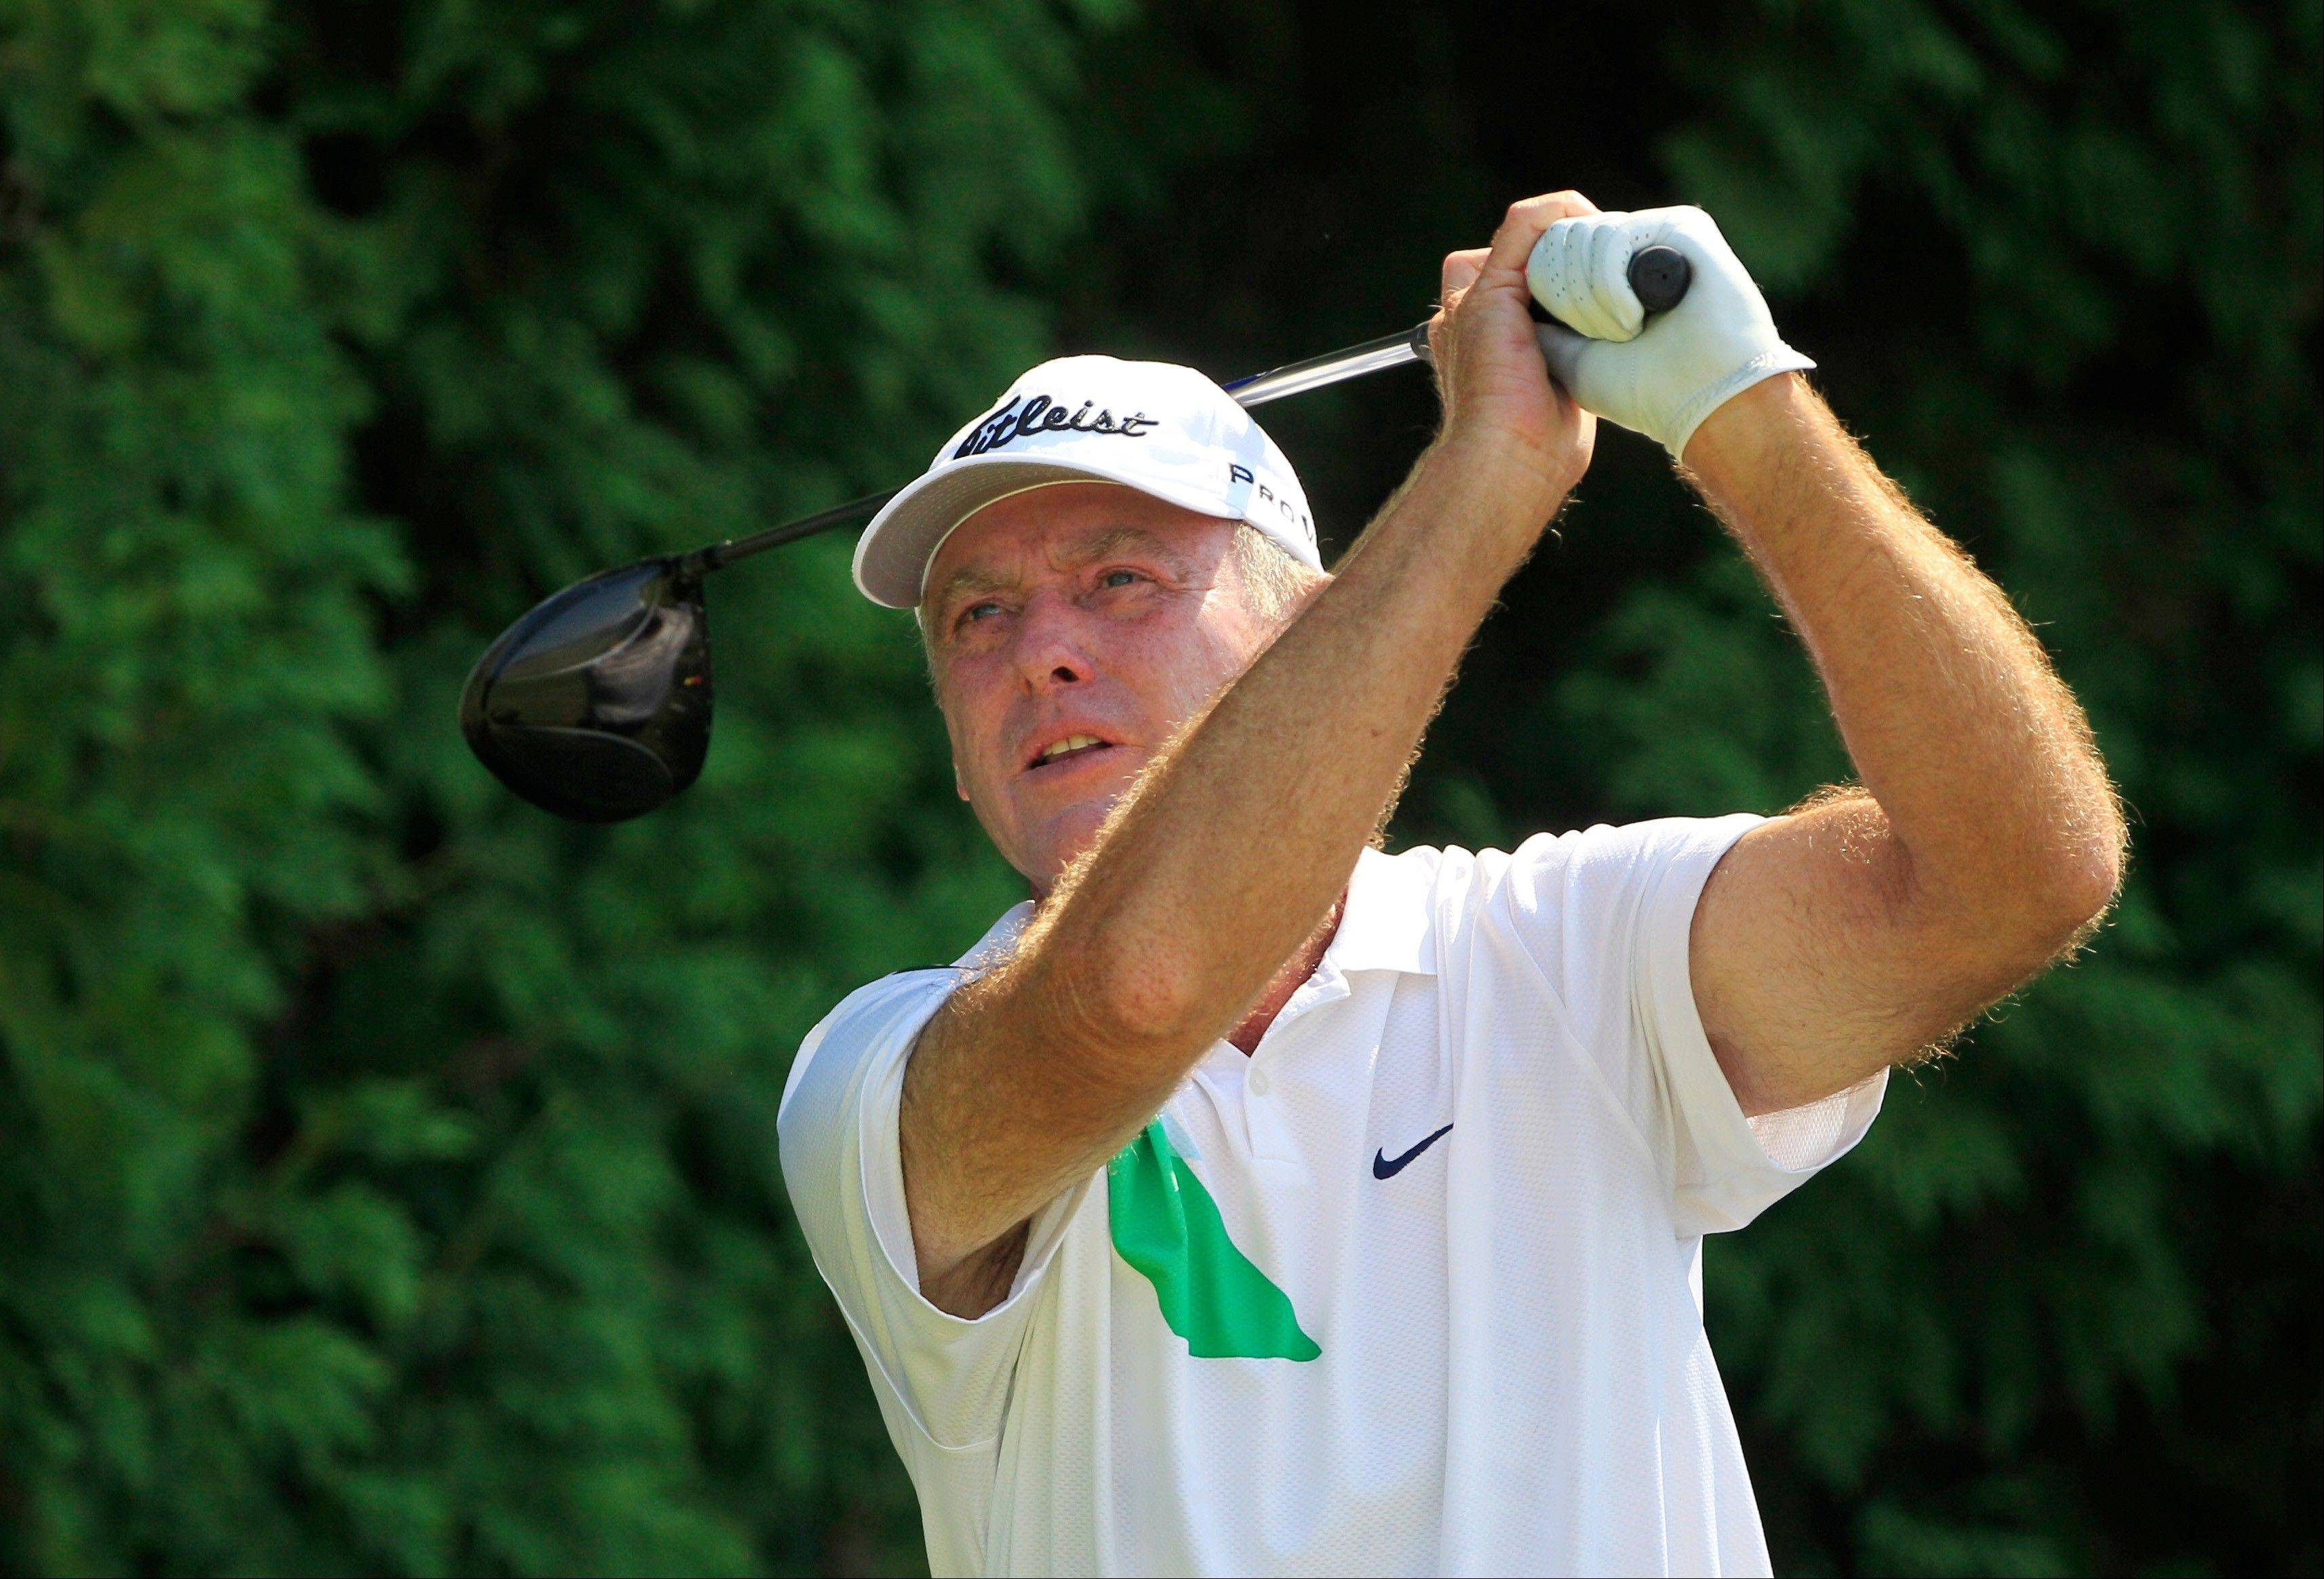 Illinois golfer Lance Ten Broeck played solidly at the U.S. Senior Open last week, but his putting kept him from winning the event.